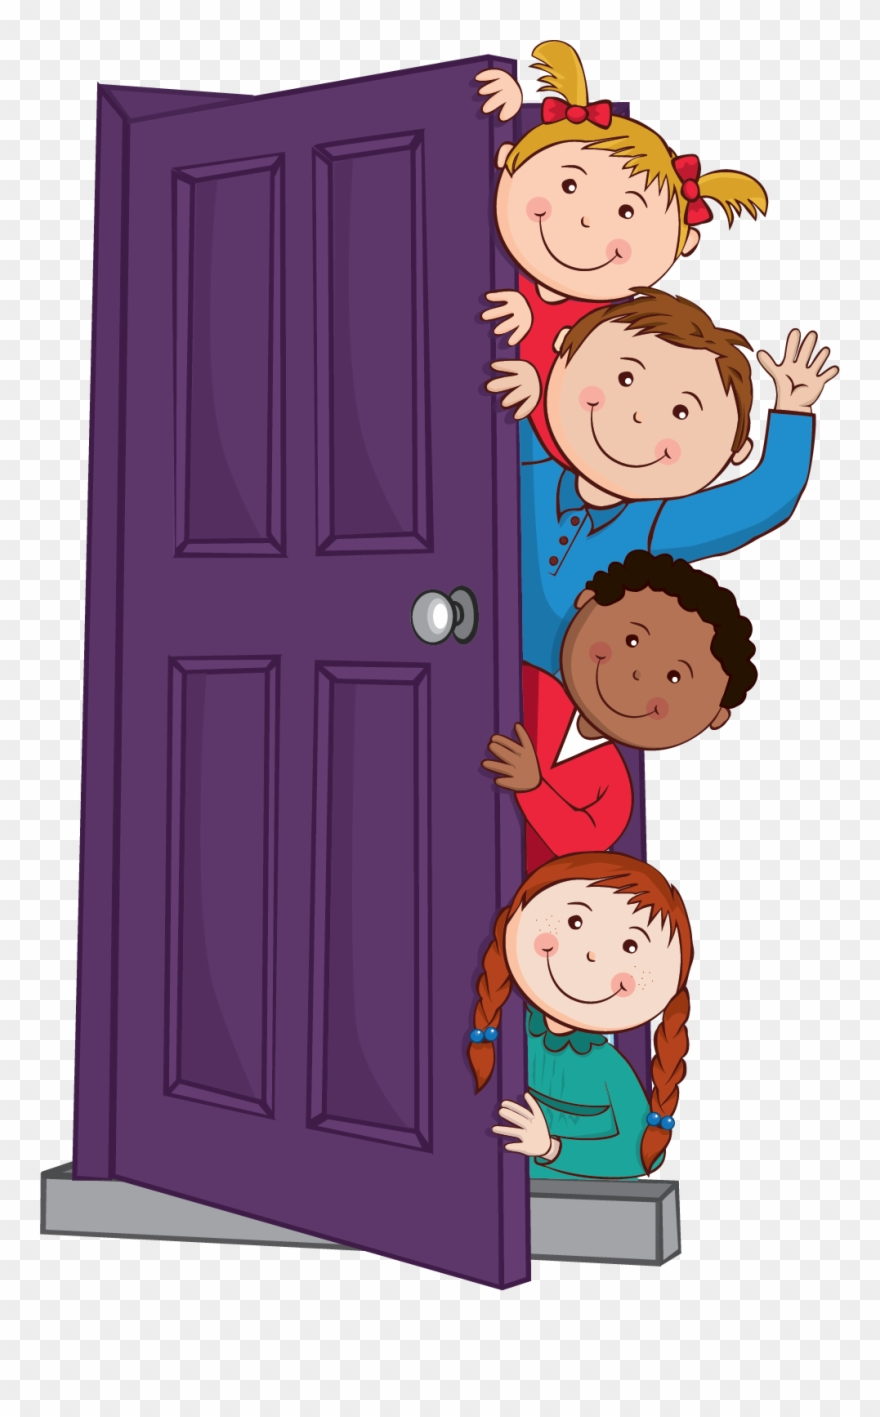 Child opening door clipart picture free Kids Peeping Behind Door - Graphics Clipart (#636847) - PinClipart picture free